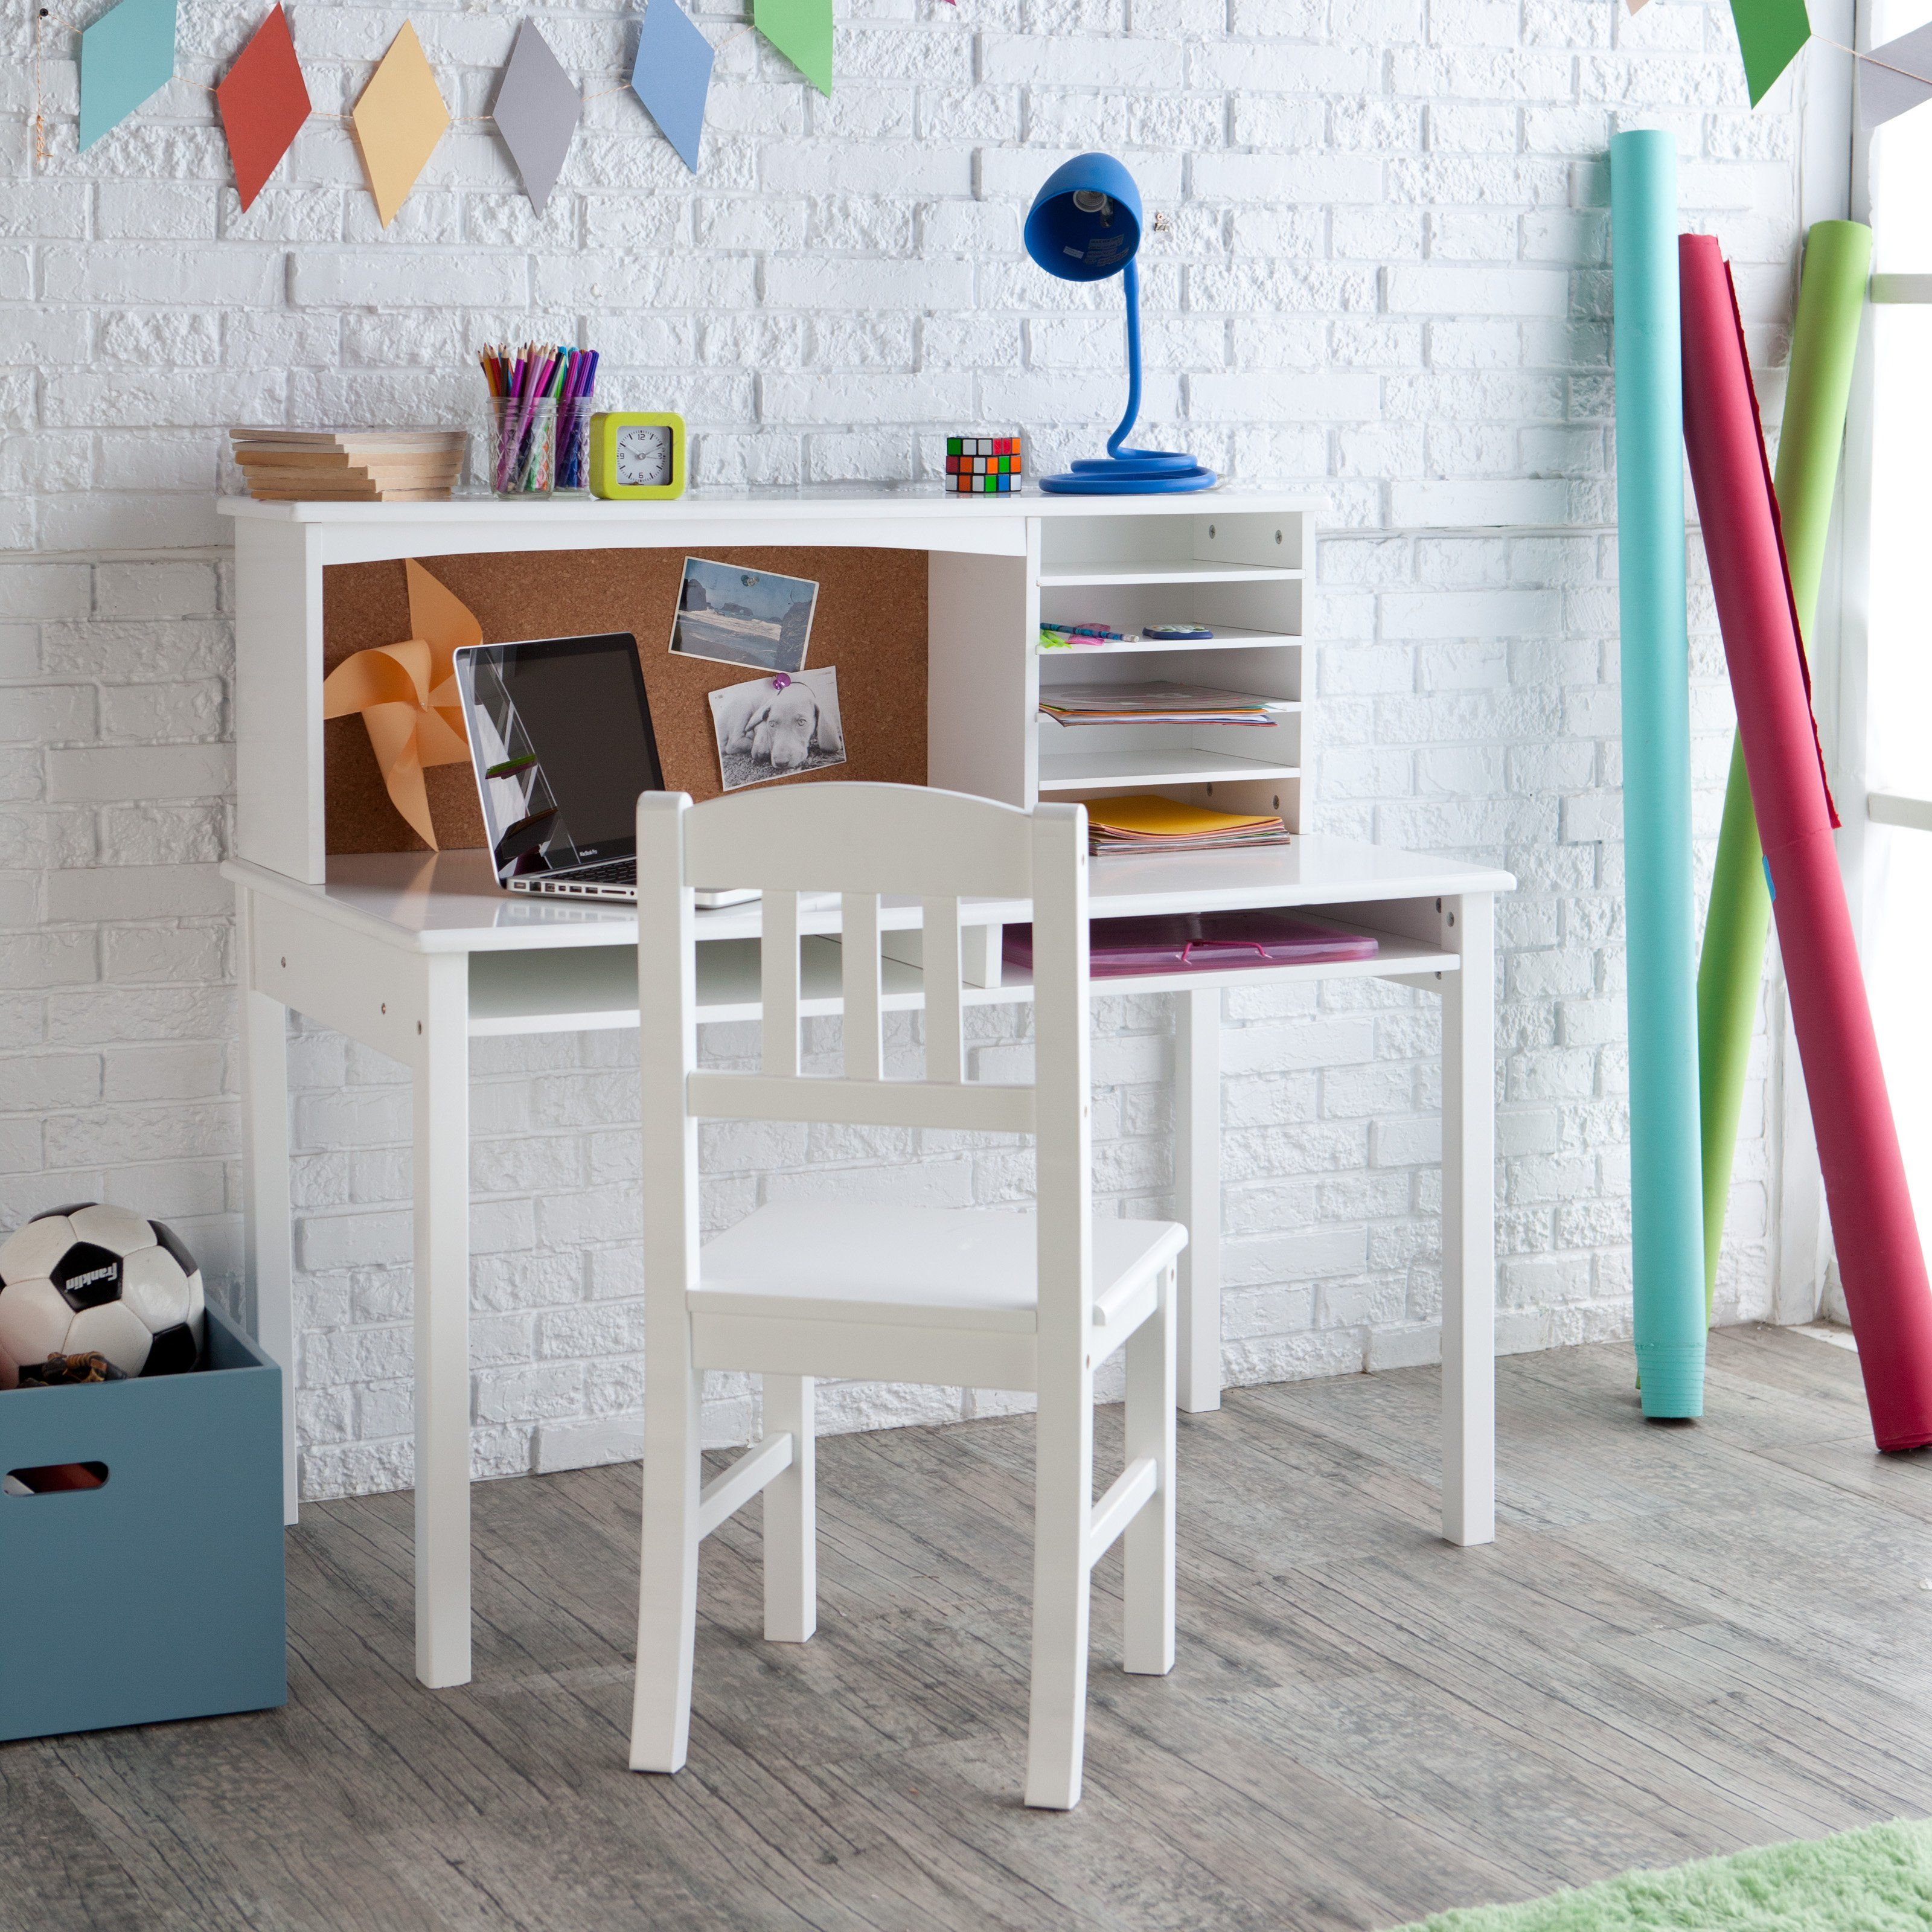 Tips For Buying A Childrens Desk Desk And Chair Set Childrens